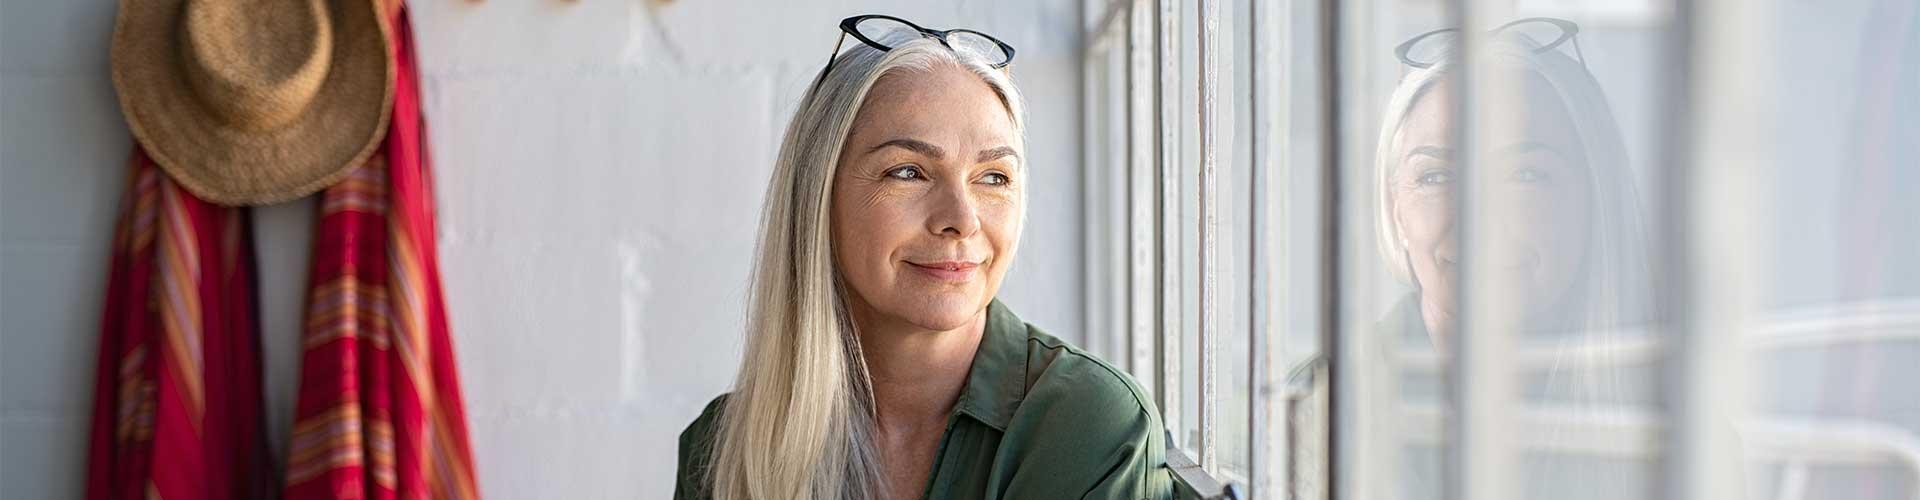 Woman with gray hair looks out window